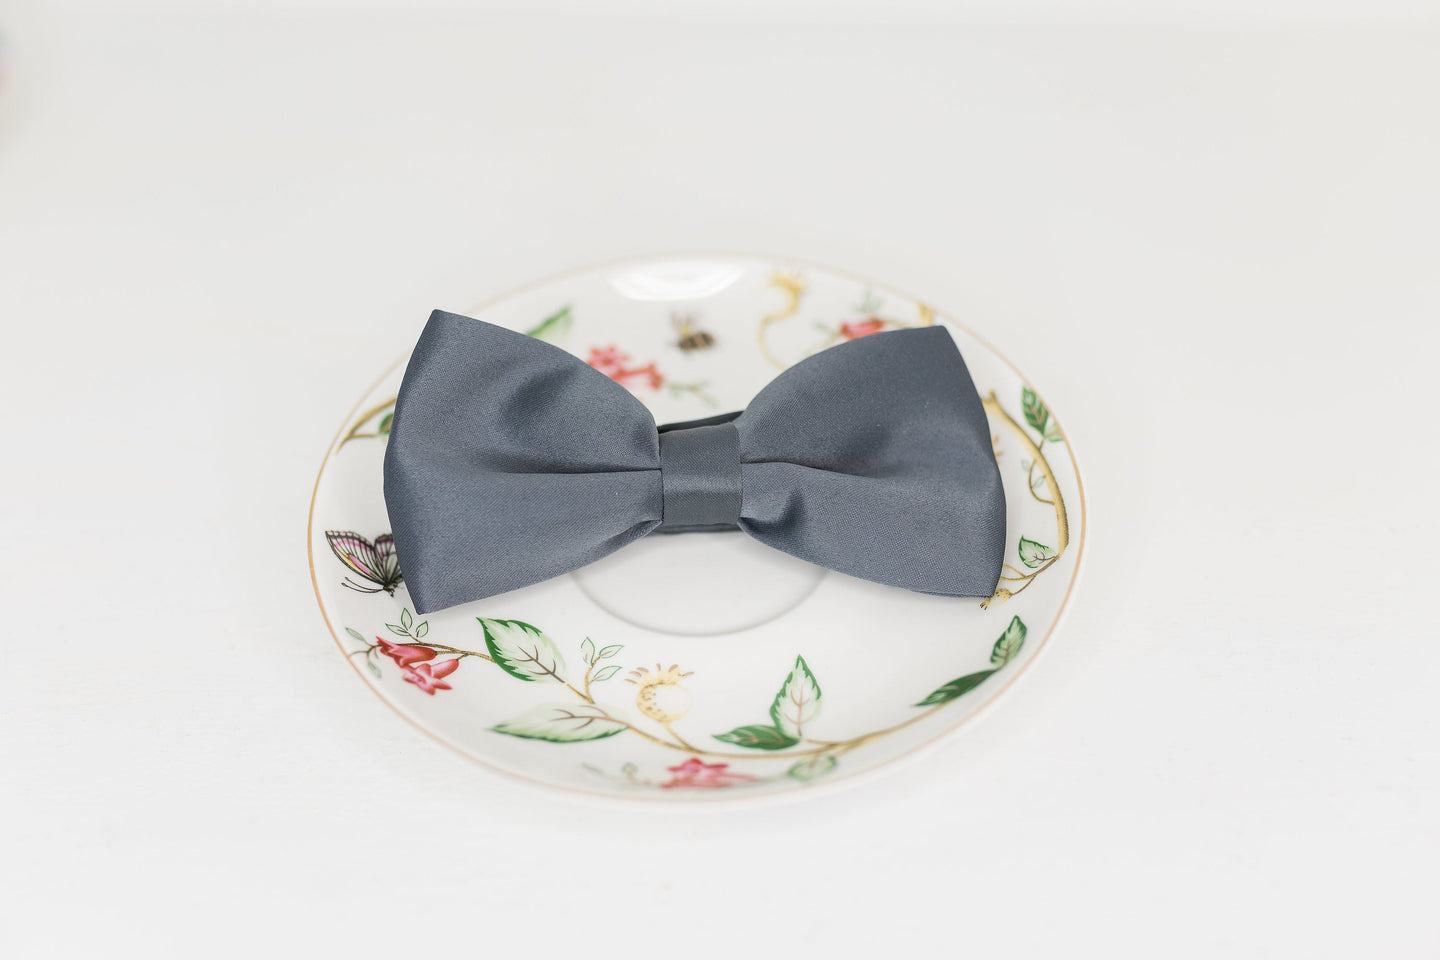 Charcoal Gray Bow Tie